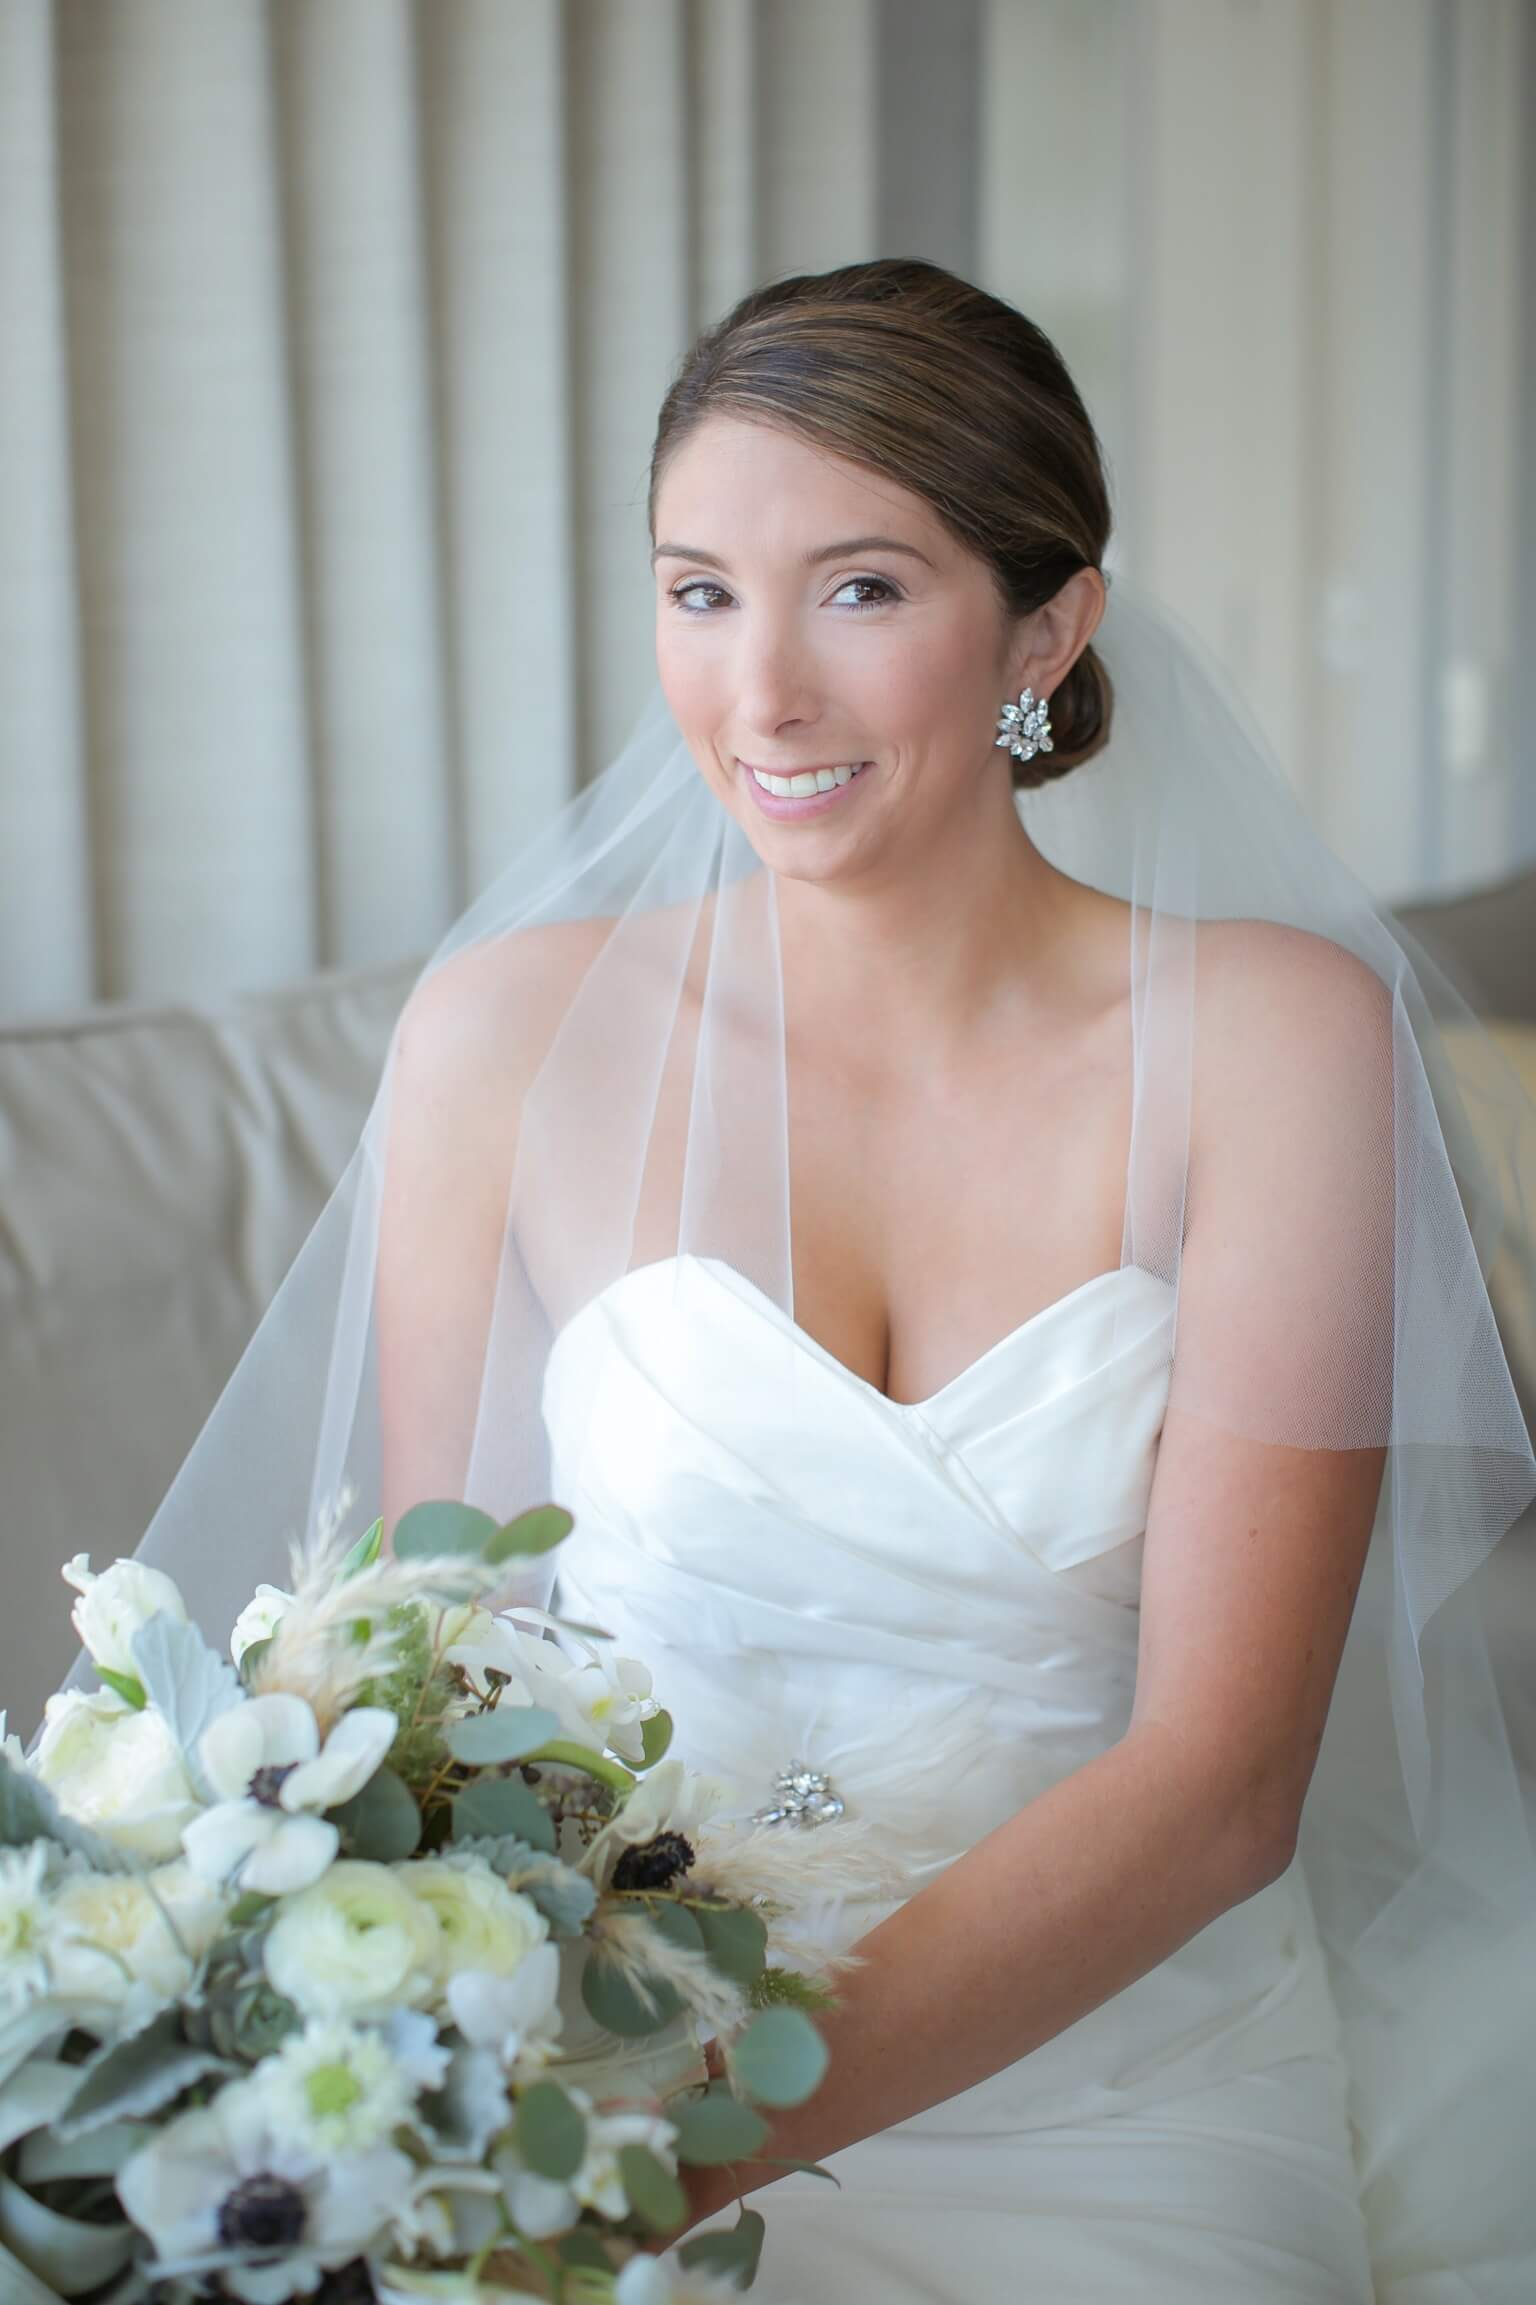 hair-salon-jacksonville-wedding-hairstyles-73